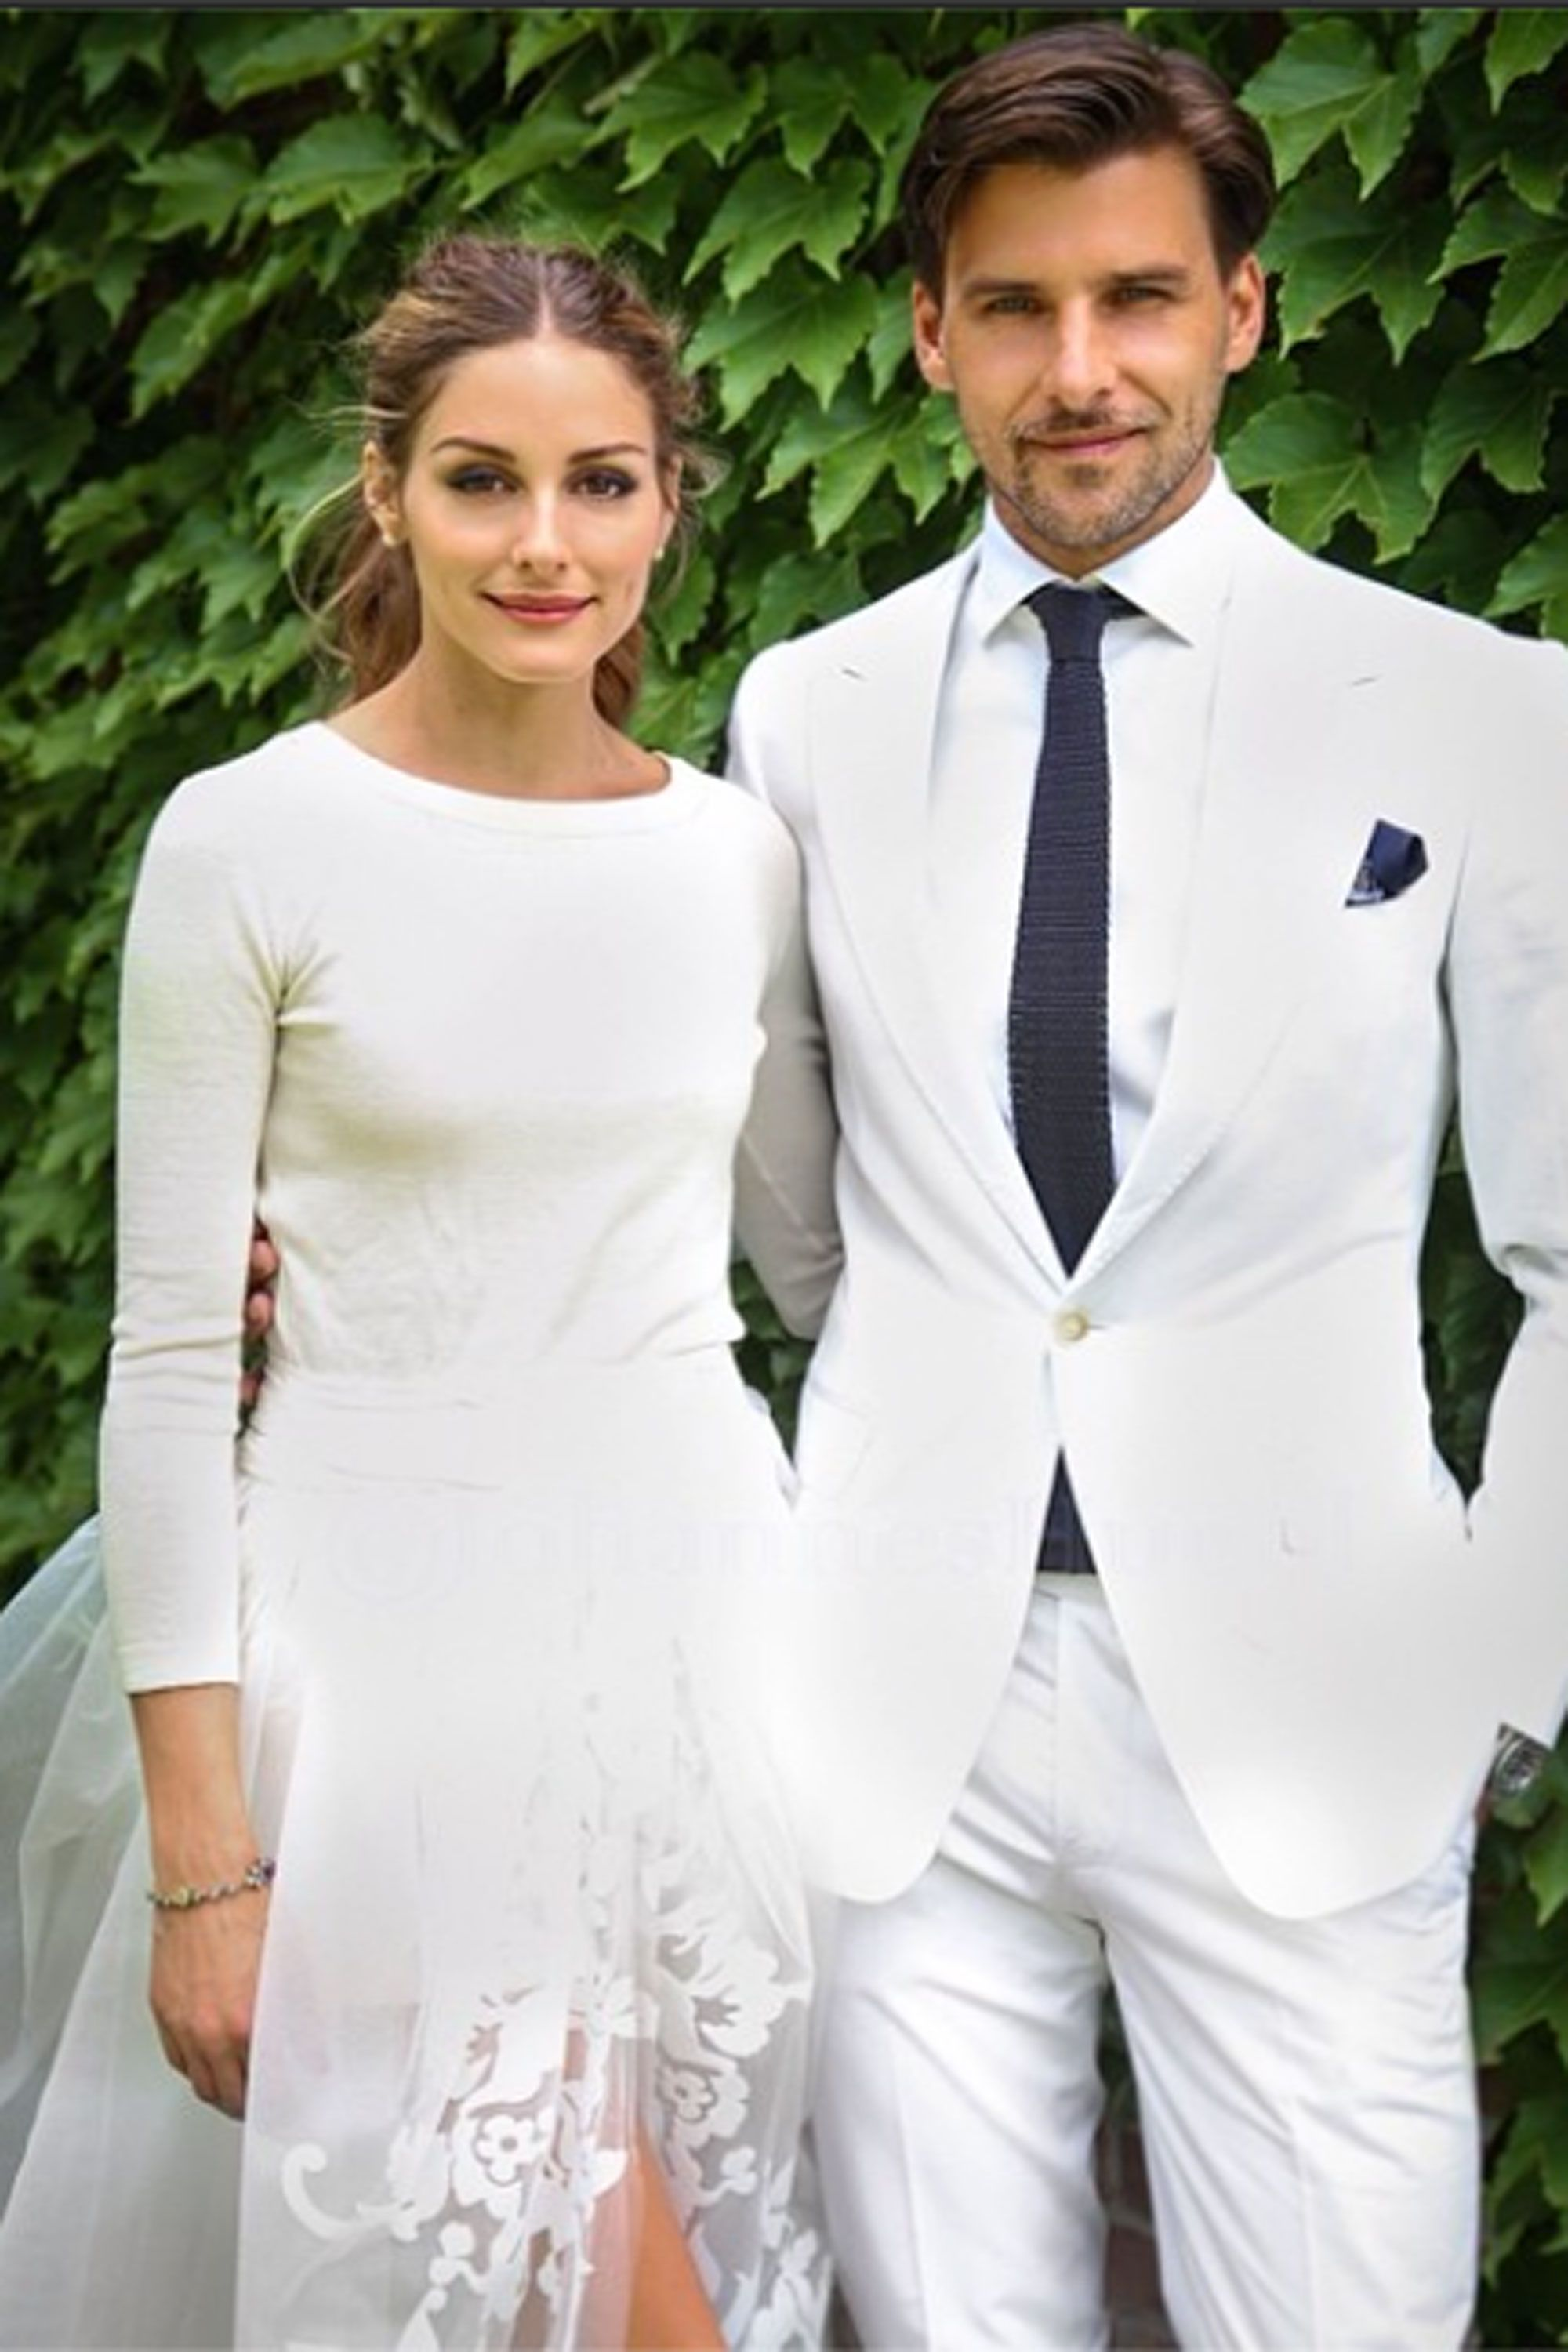 40 Most Stunning Celebrity Wedding Of All Time Celeb Bridal Gowns